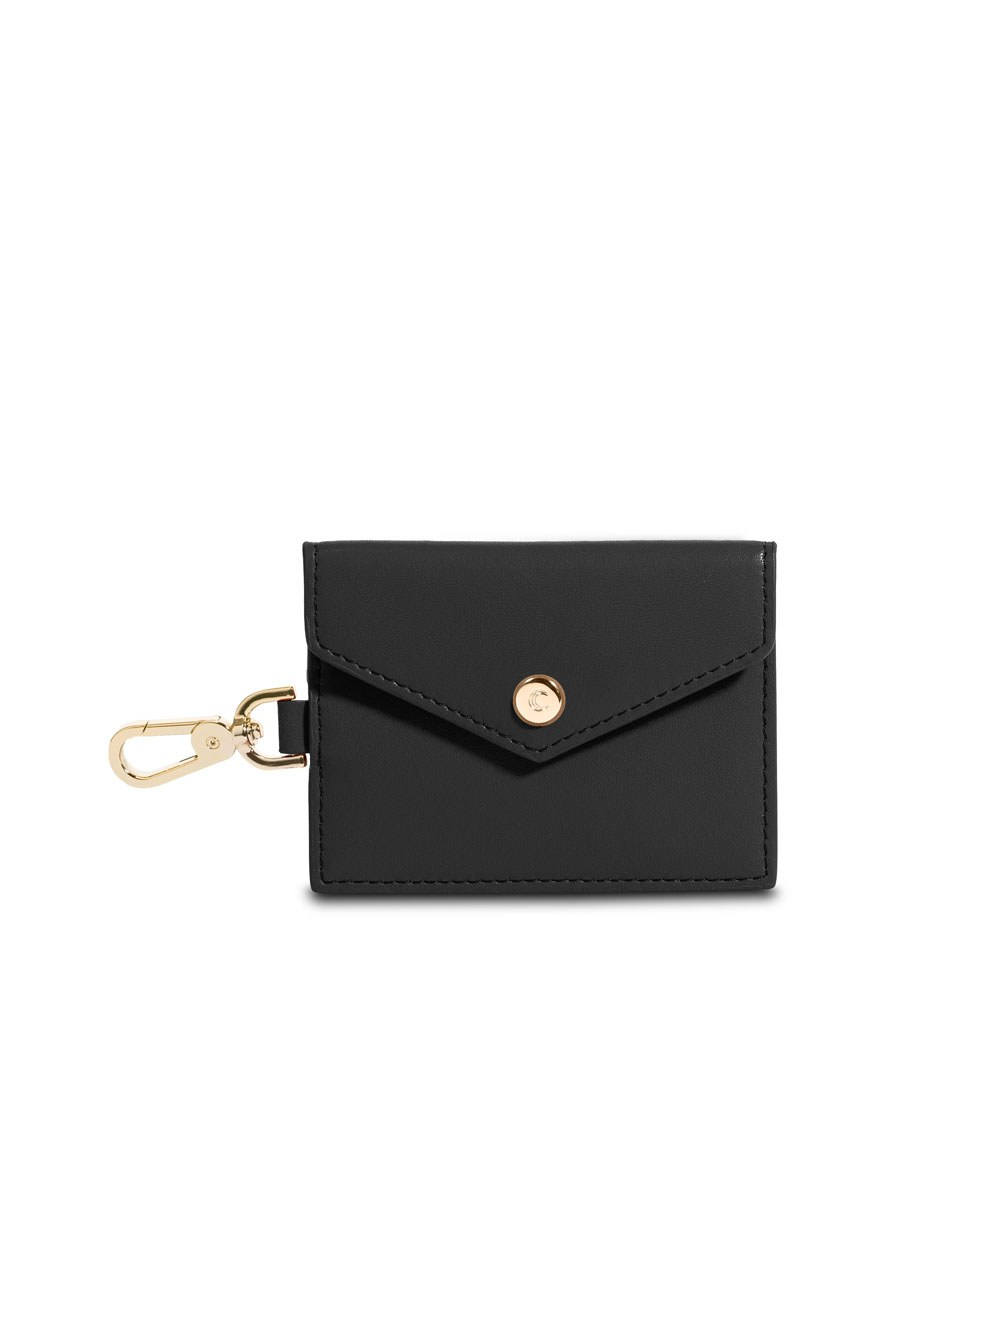 Card Holder With Clip - Black